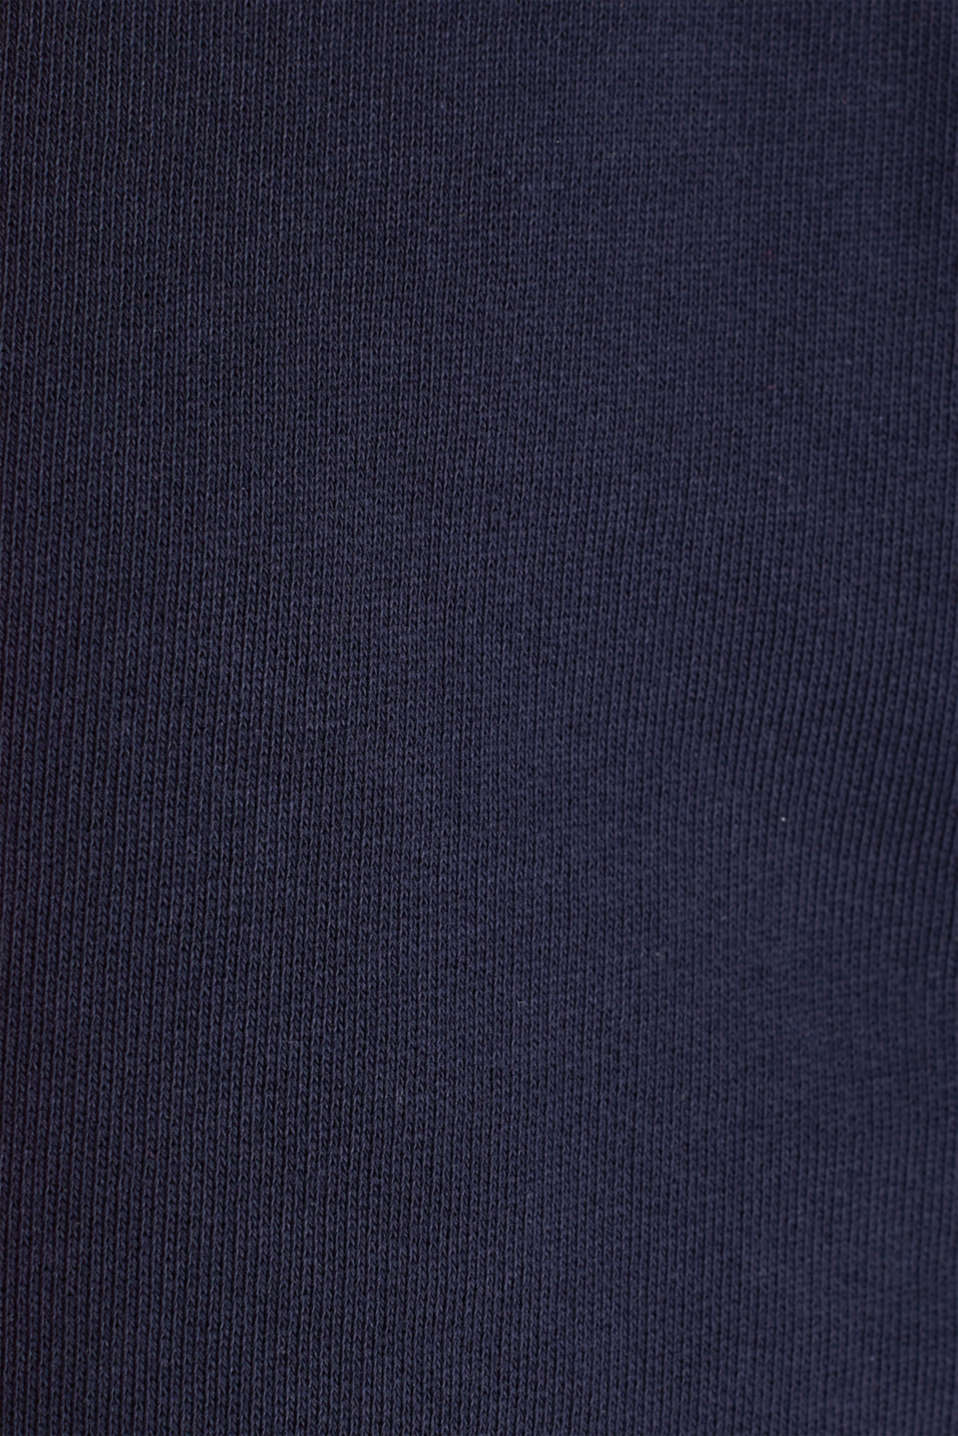 Cardigan, 100% cotton, NAVY, detail image number 4